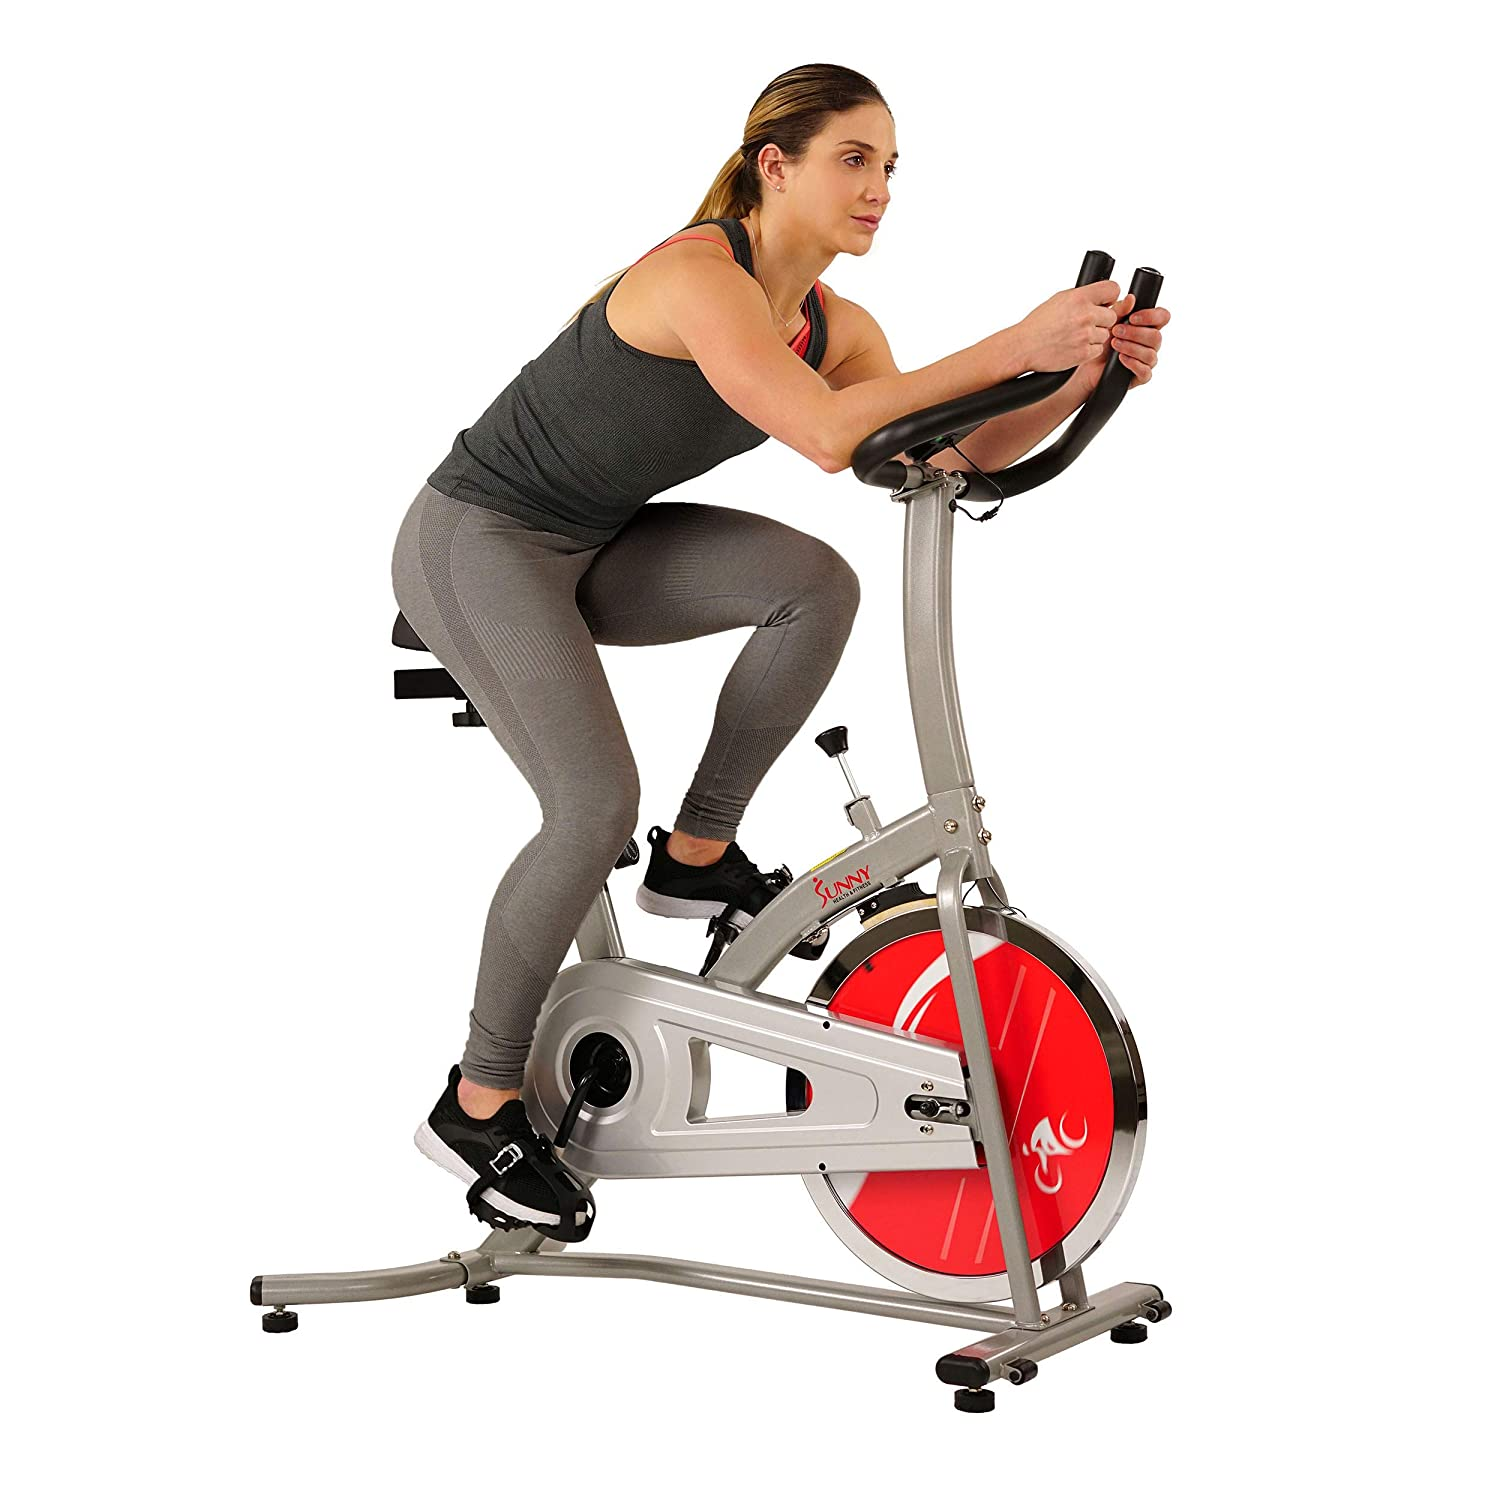 Sunny Health Fitness Indoor Cycle Exercise Stationary Bike with LCD Monitor, 22 LB Chromed Flywheel, Felt Resistance, 220 LB Max Weight – SF-B1203